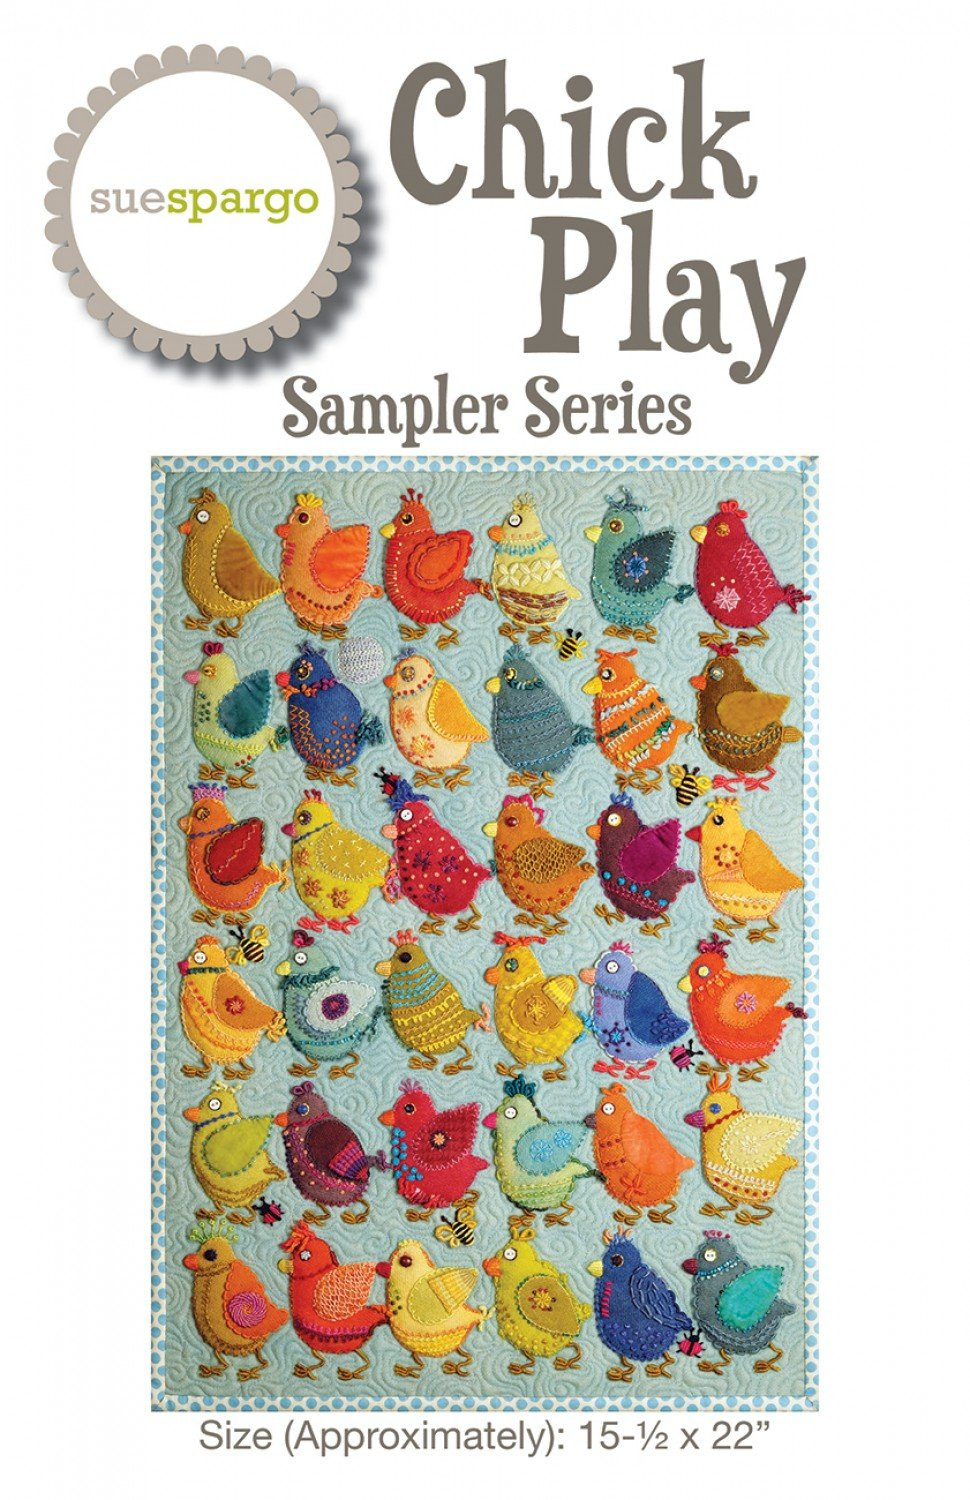 Sampler Series Pattern: Chick Play